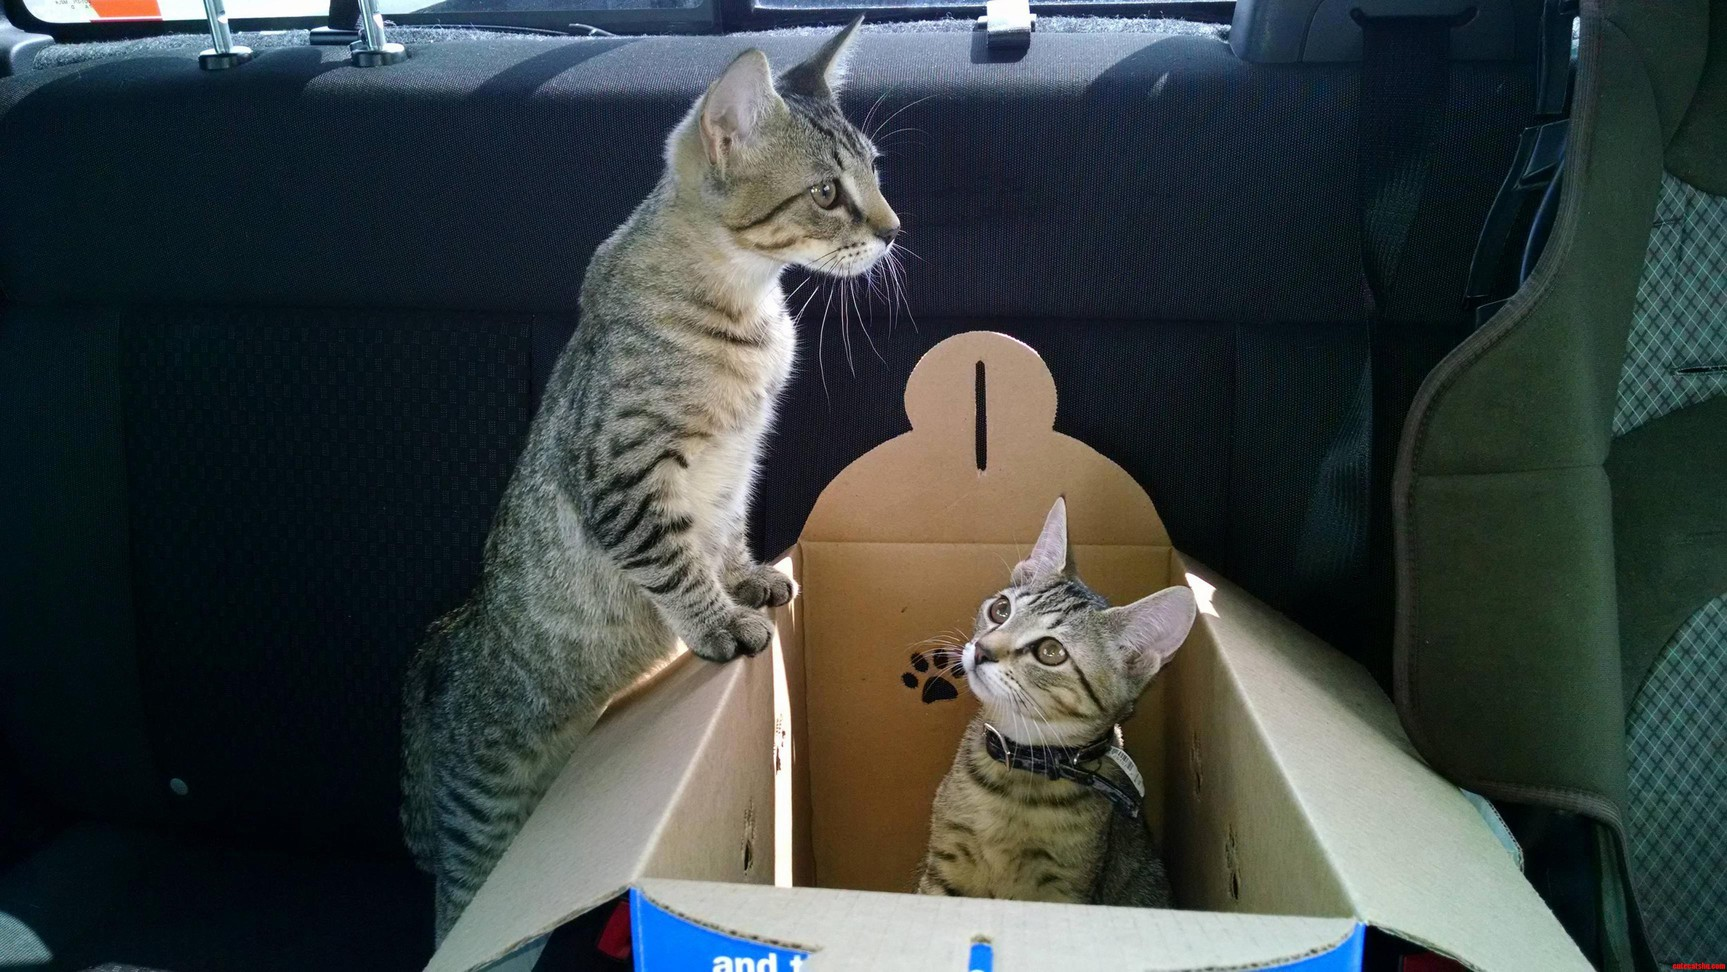 Went To Buy Our First Cat And Ended Up Getting Two